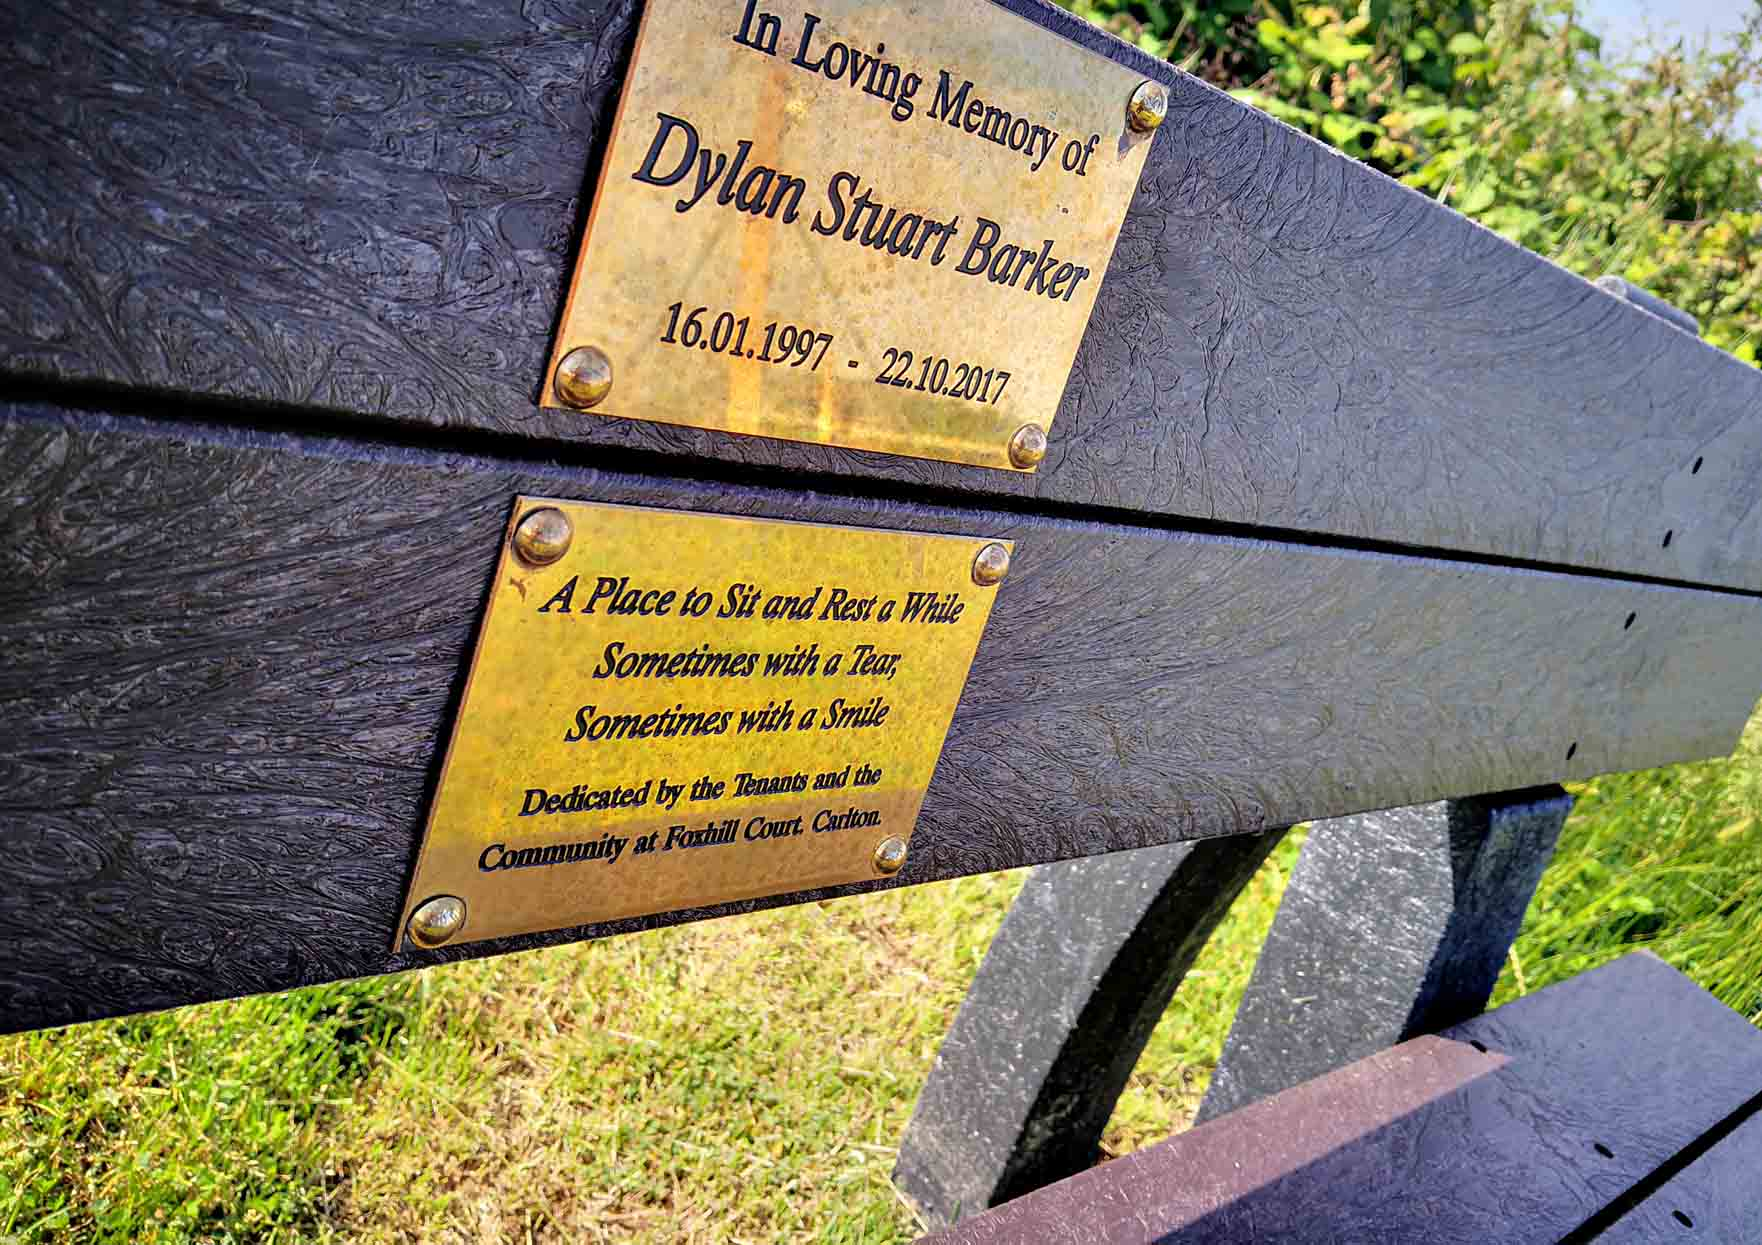 Friends and family gather at Gedling Country Park to see unveiling of memorial bench for Dylan Barker